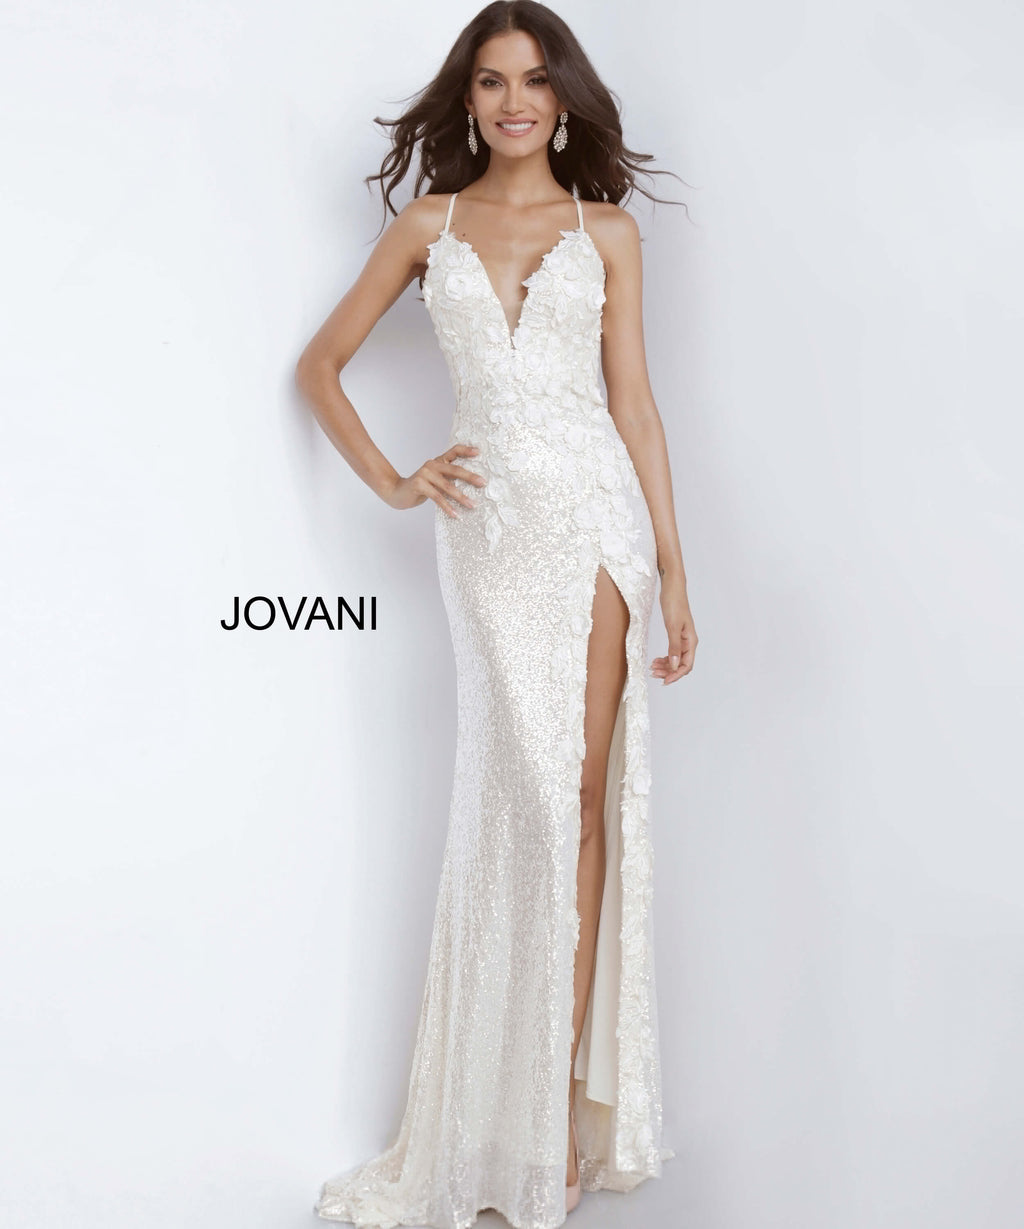 Jovani 1012 Plunging Neckline Evening Dress